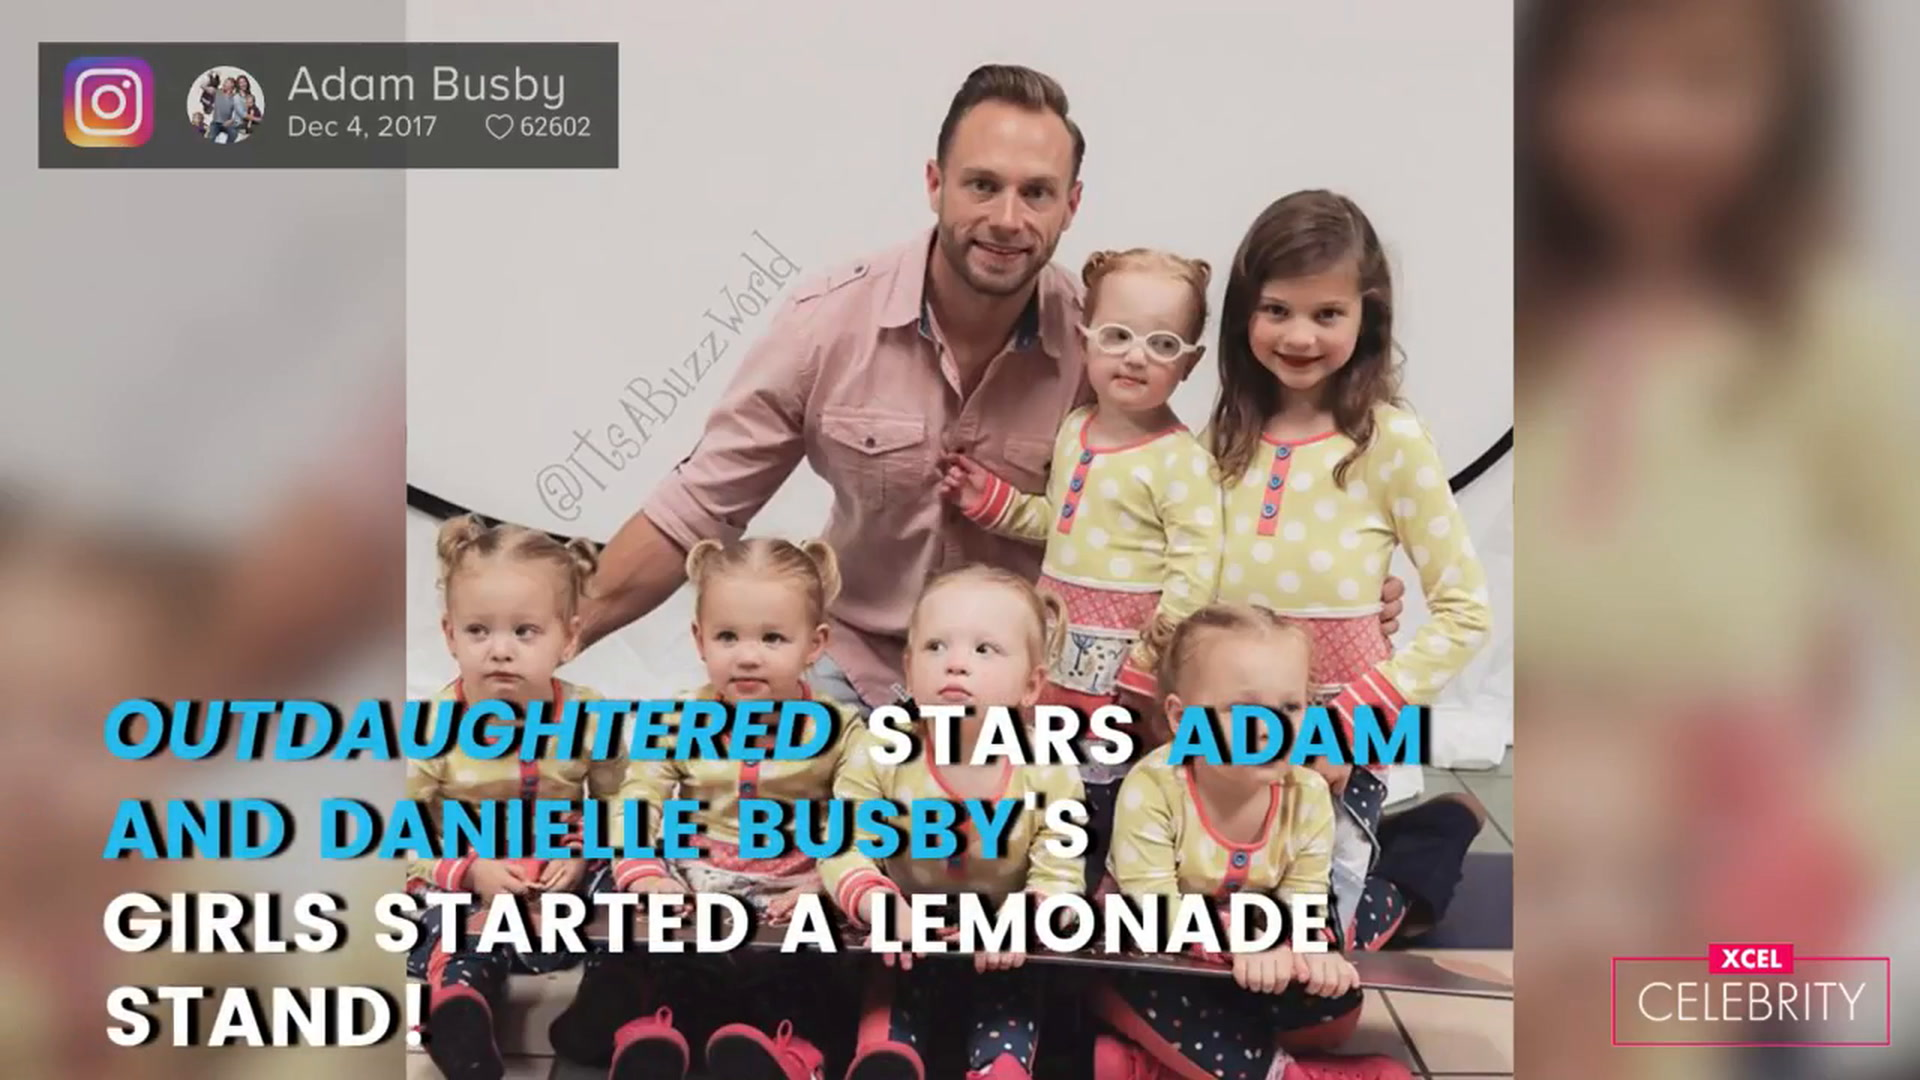 Outdaughtered Sisters Are Little Entrepreneurs in the Making!